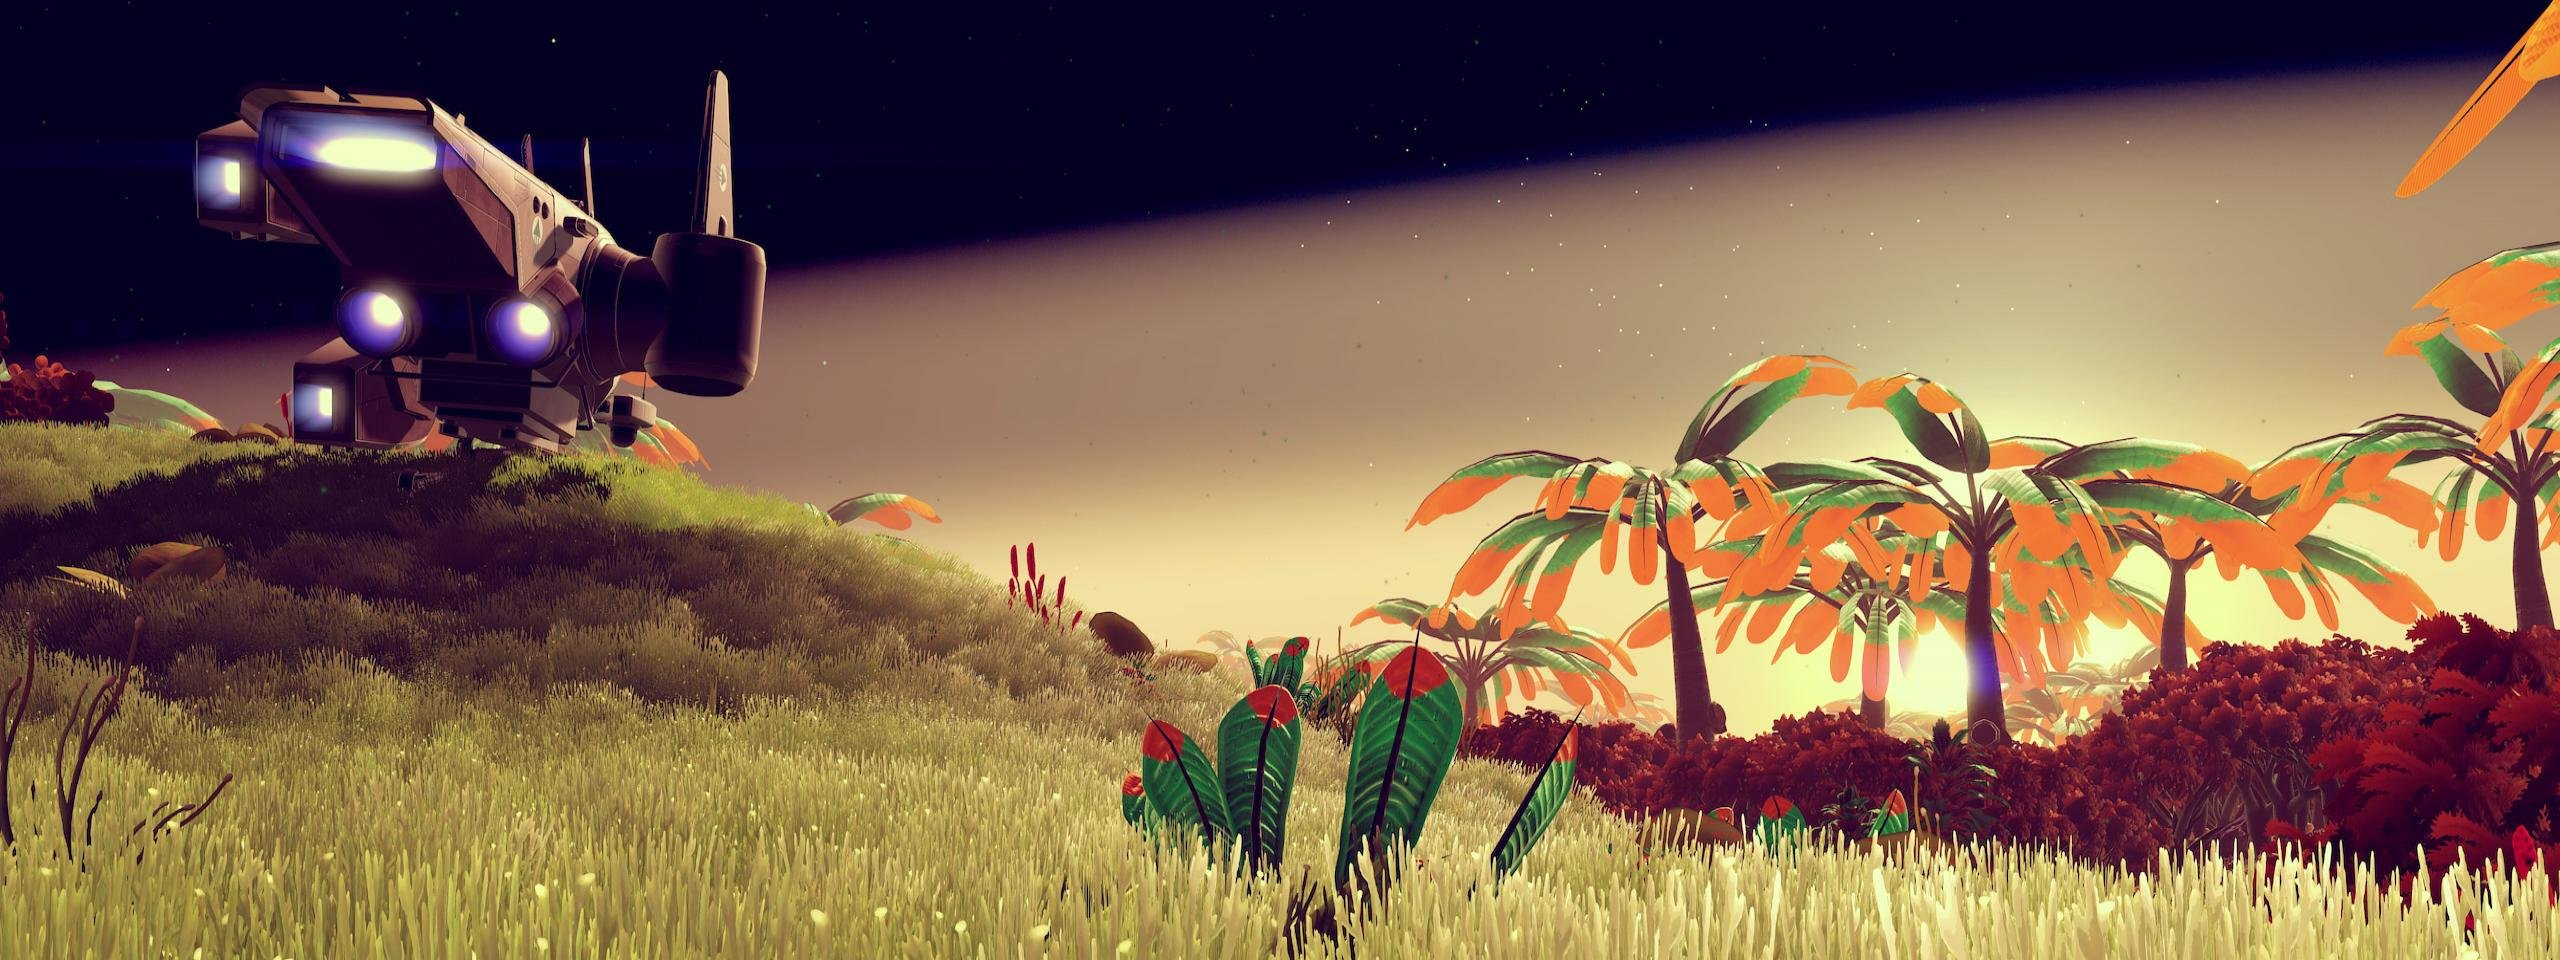 Free download No Man's Sky wallpaper ID:110458 dual monitor 2560x960 for PC